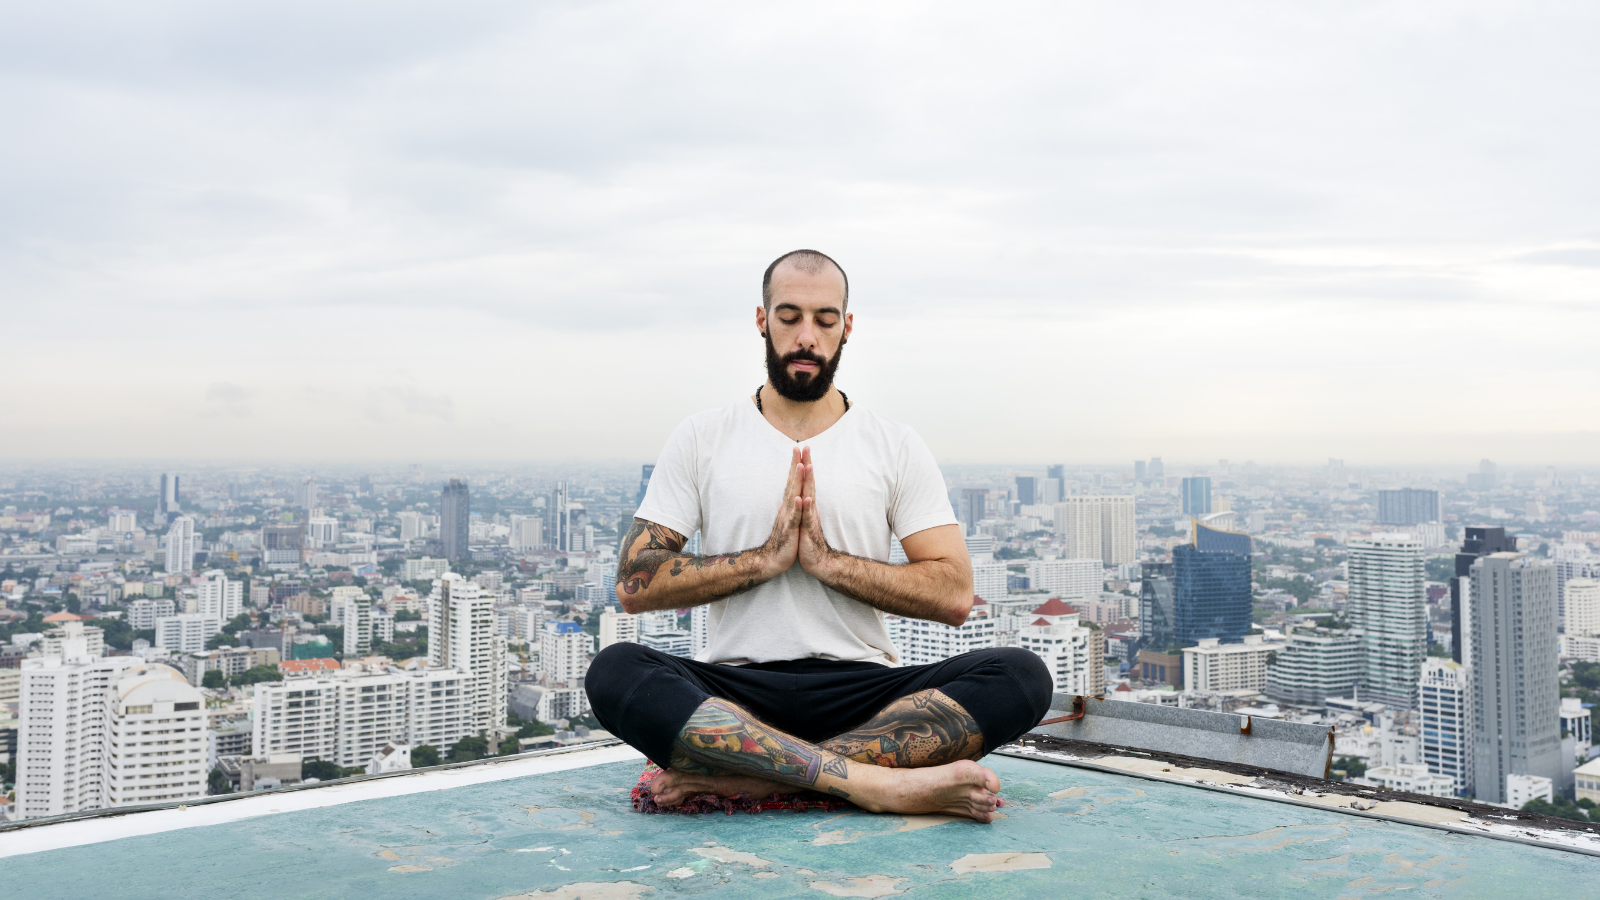 International Yoga Day celebrates oneness as well as the universal